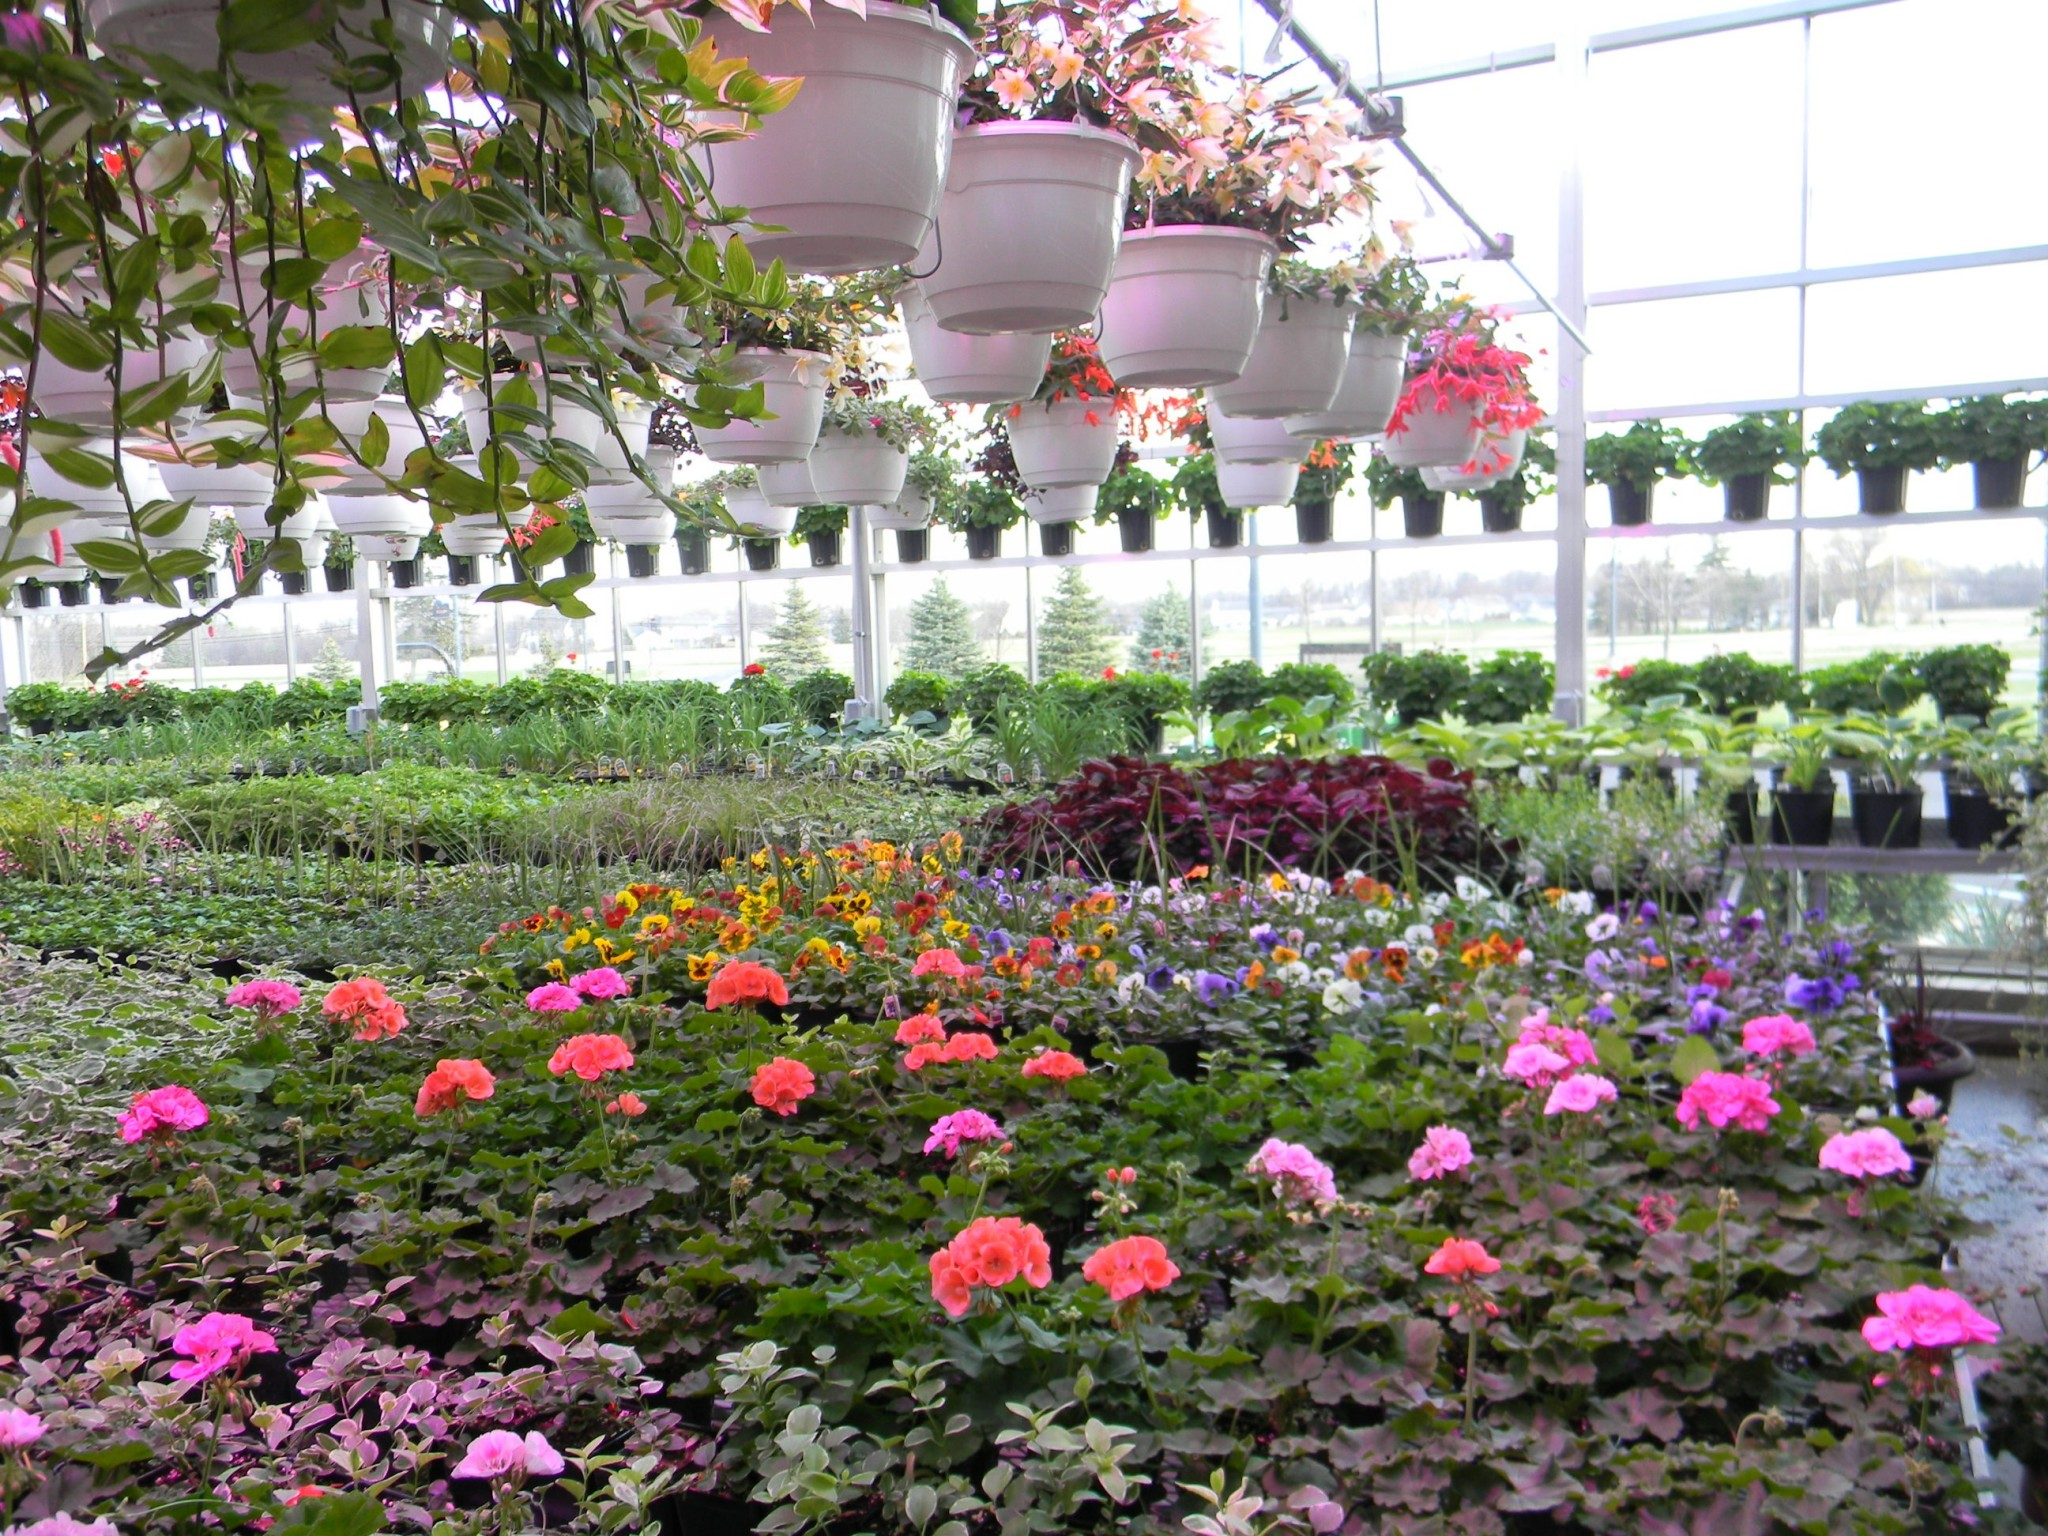 A wide variety of plants, flowers and trees will be available at Penta Career Center's FFA chapter Plant Sale April 26 from 1-5 p.m. on the school's Perrysburg Township campus. (Submitted photo)